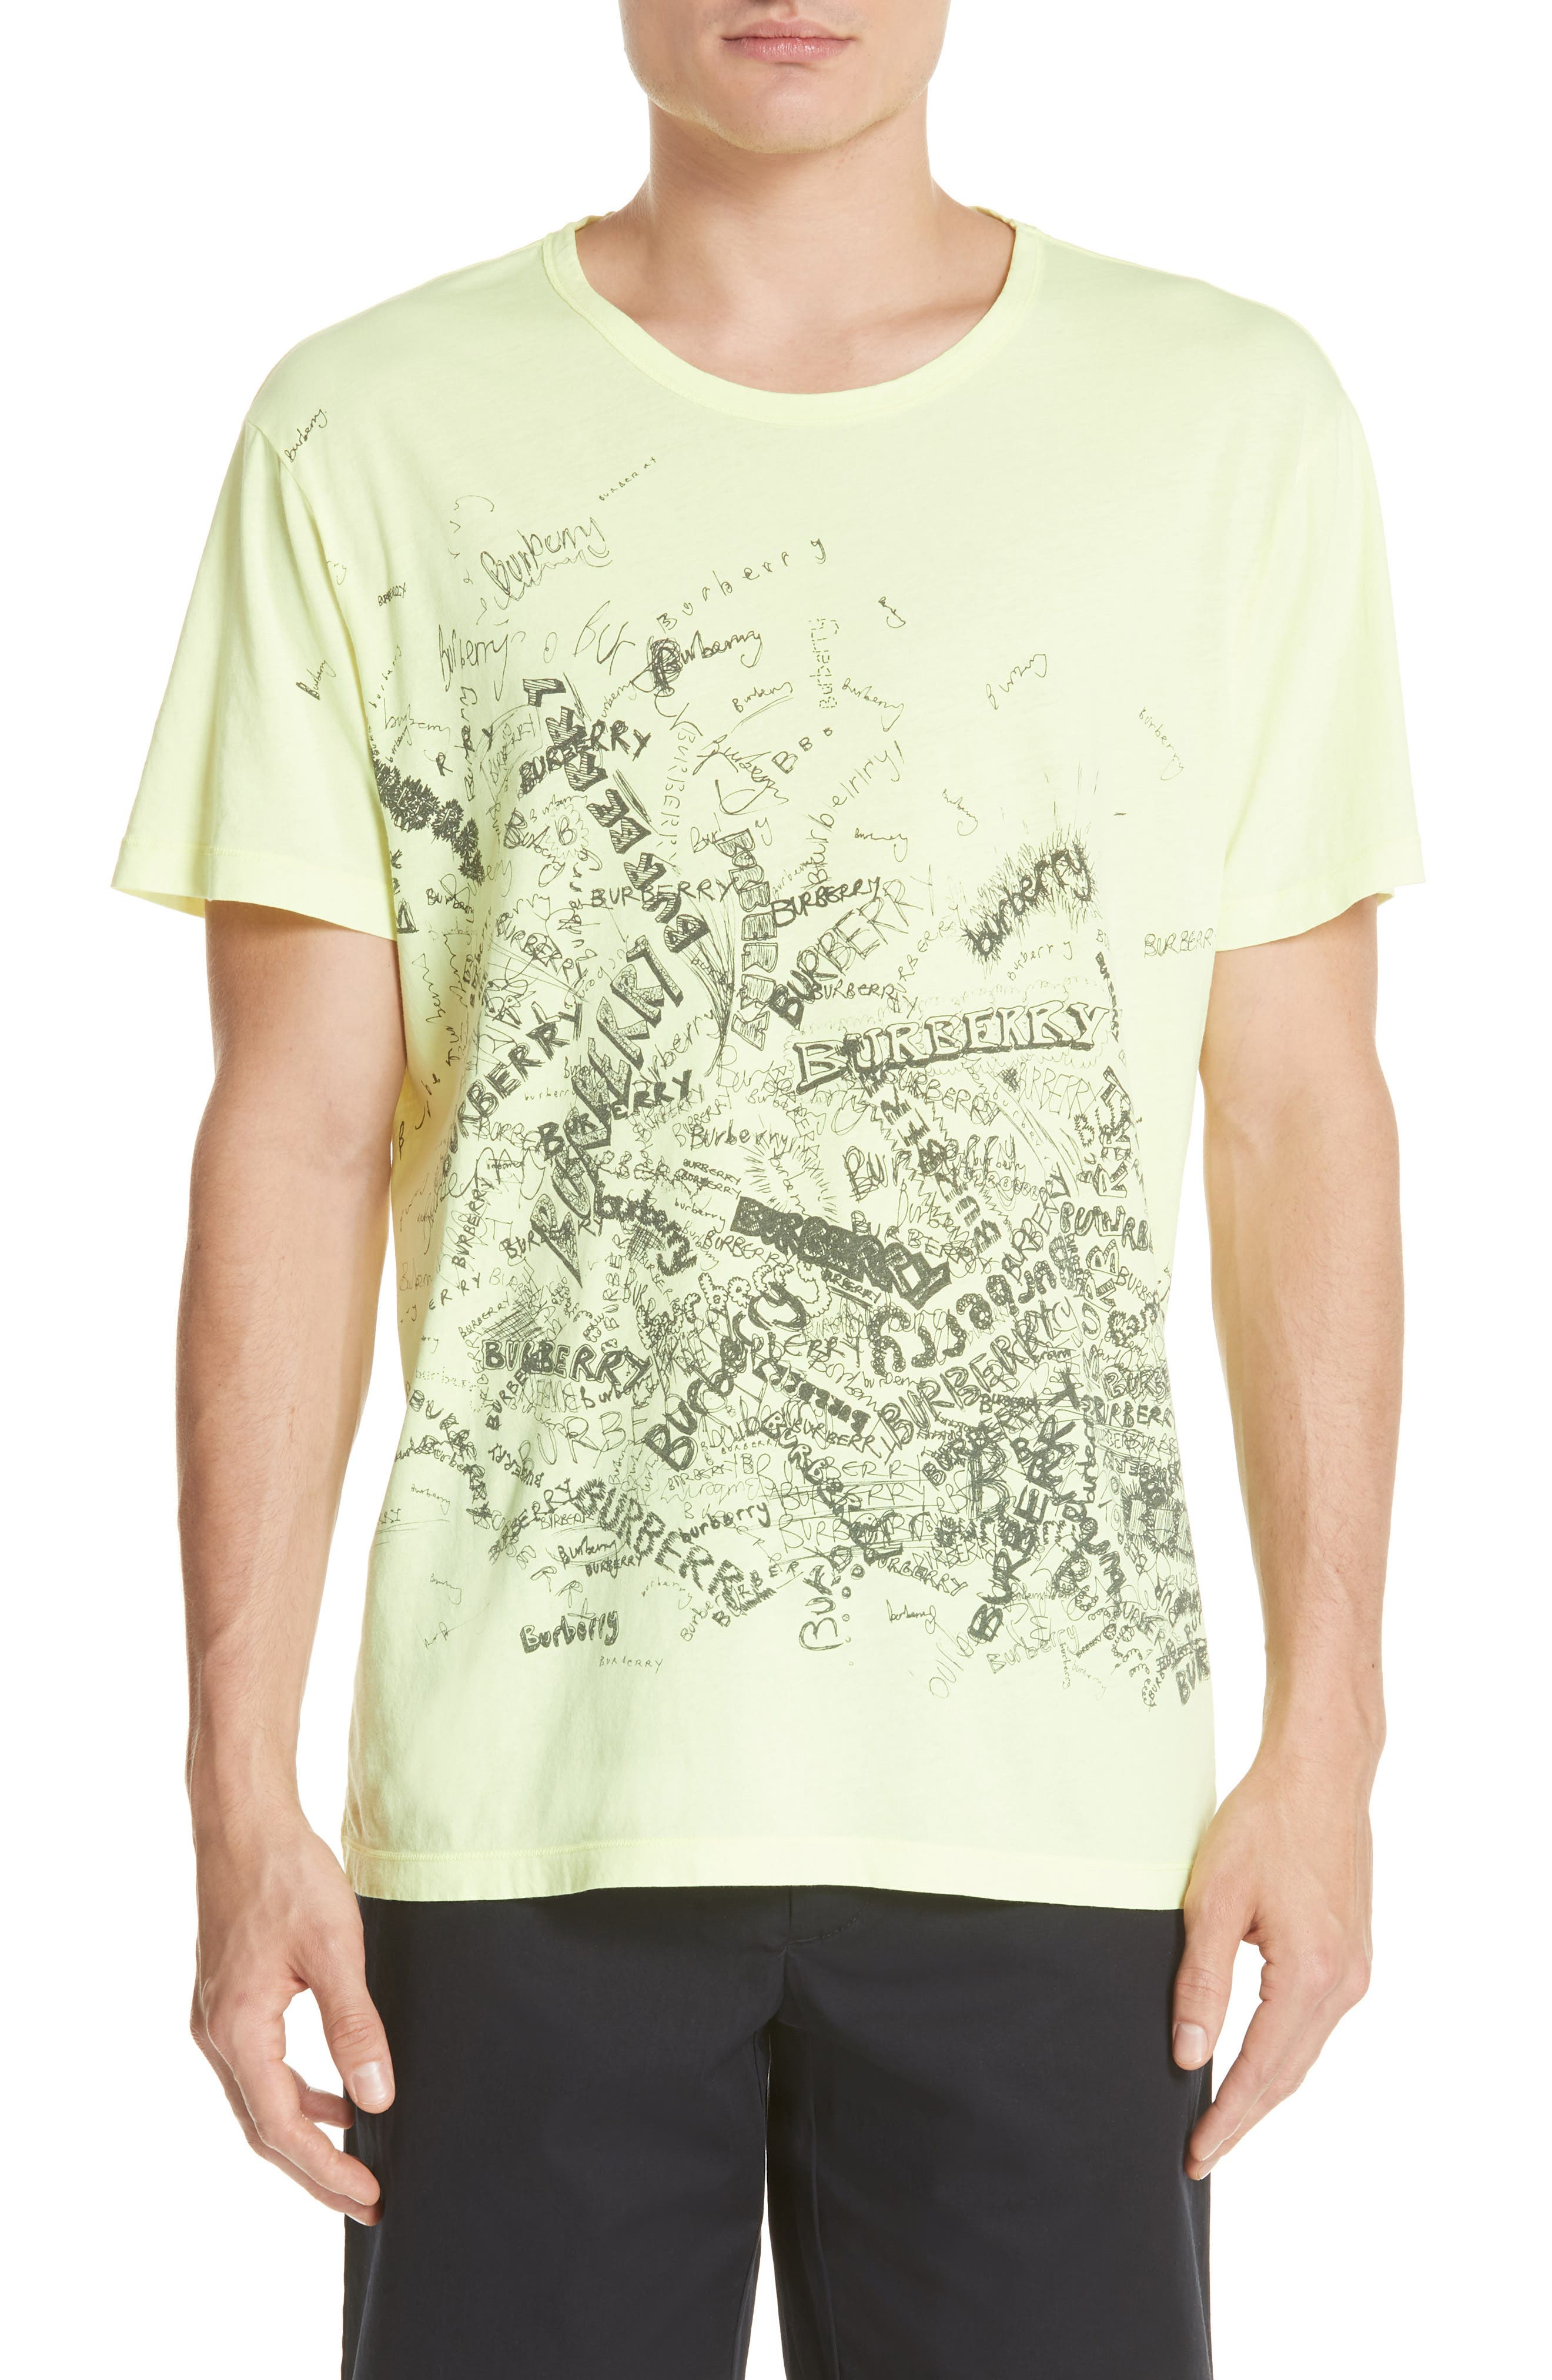 BURBERRY Rydon Graphic T-Shirt, Main, color, 700